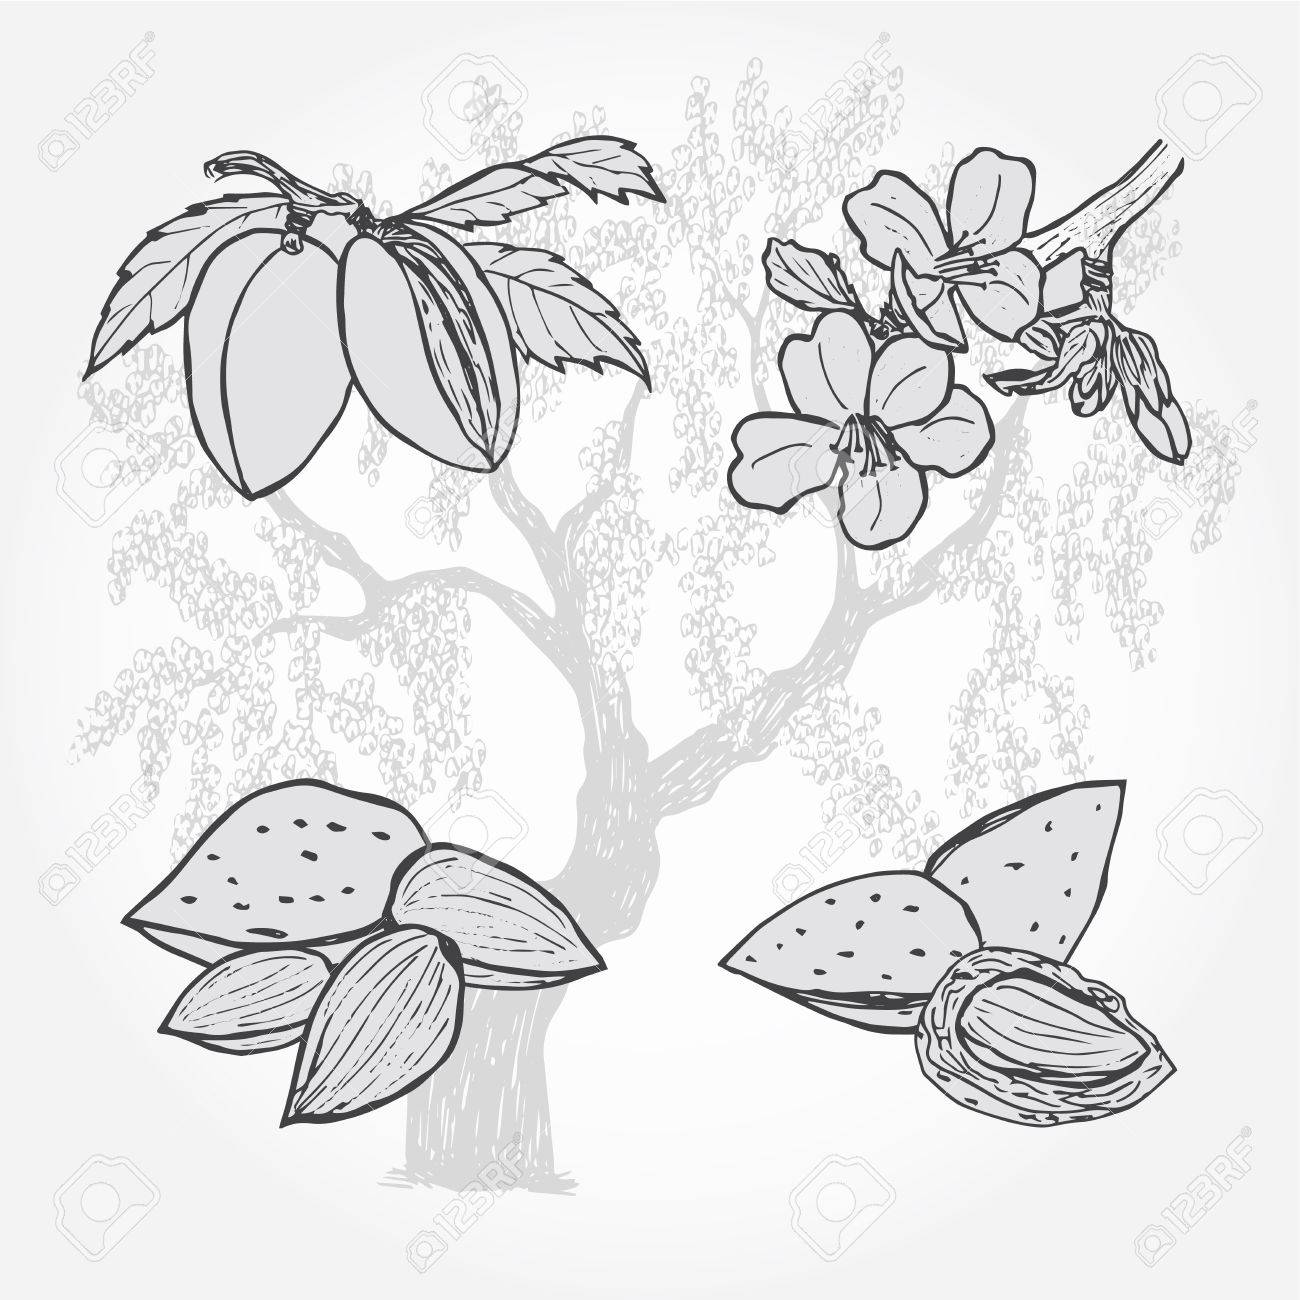 Almond Tree And Nuts Vector Sketch Illustration Royalty Free Cliparts Vectors And Stock Illustration Image 59705058